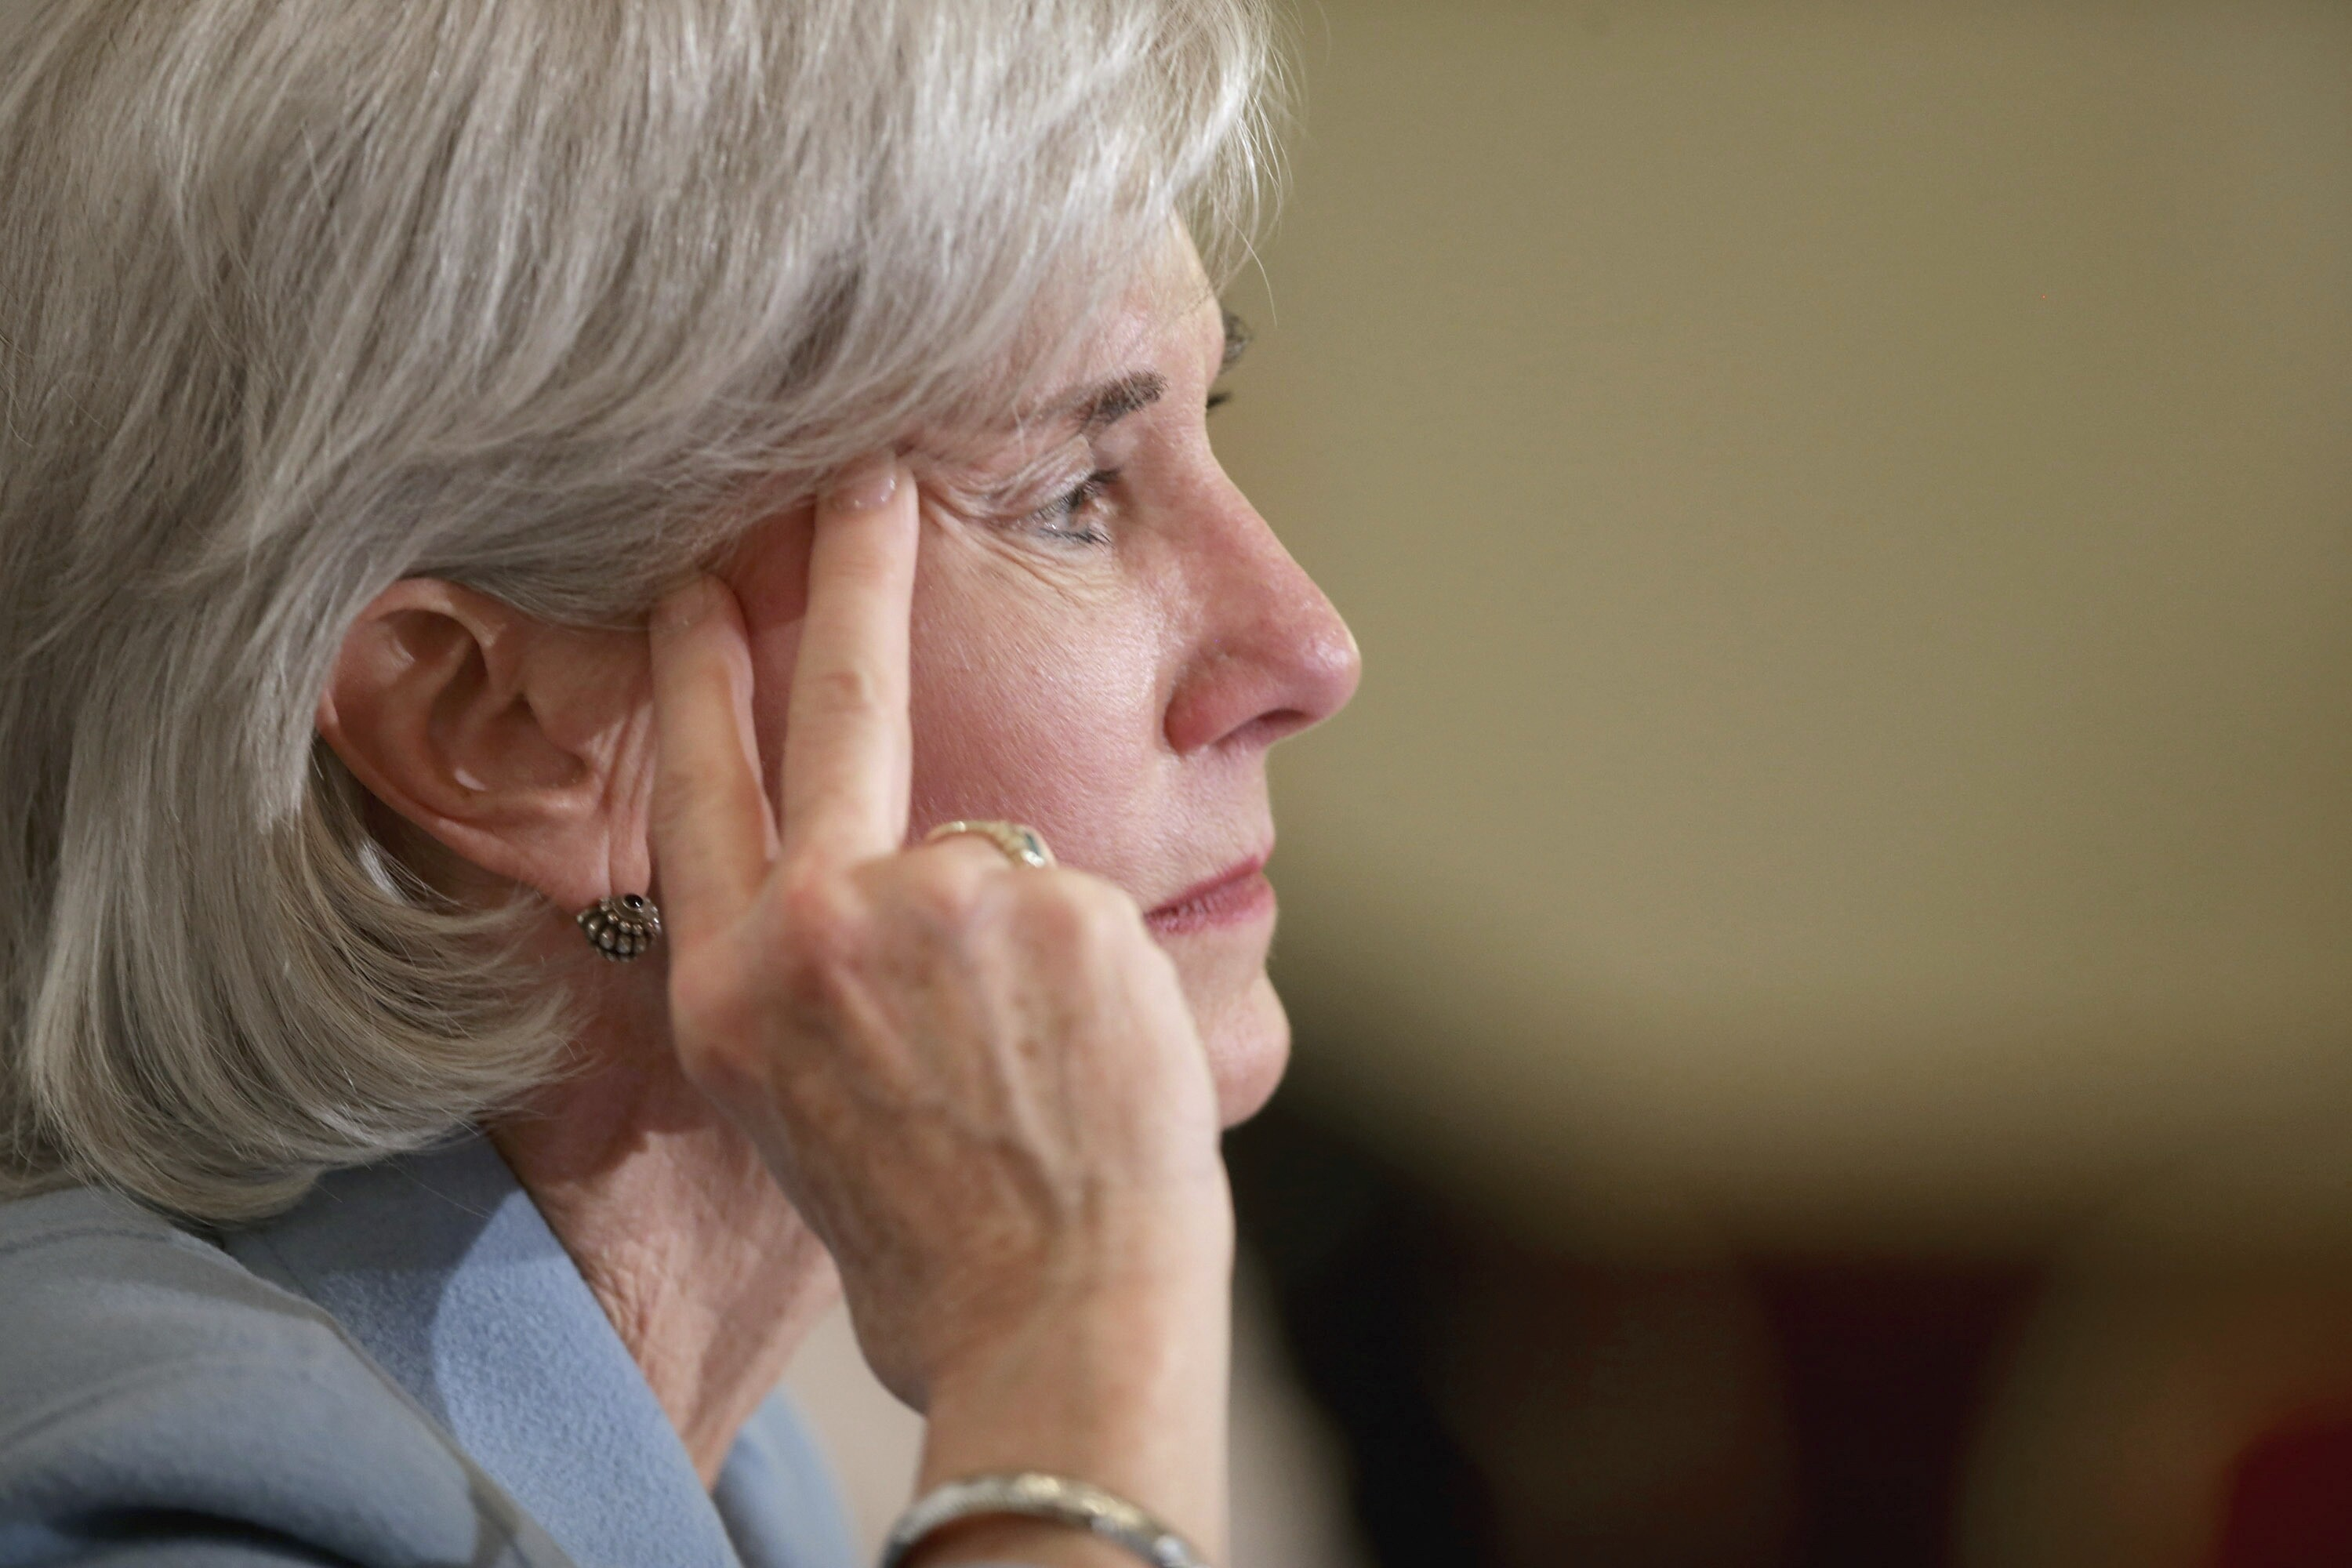 Exclusive: Enroll America told reporter 'no truth' to Kathleen Sebelius fundraising claims